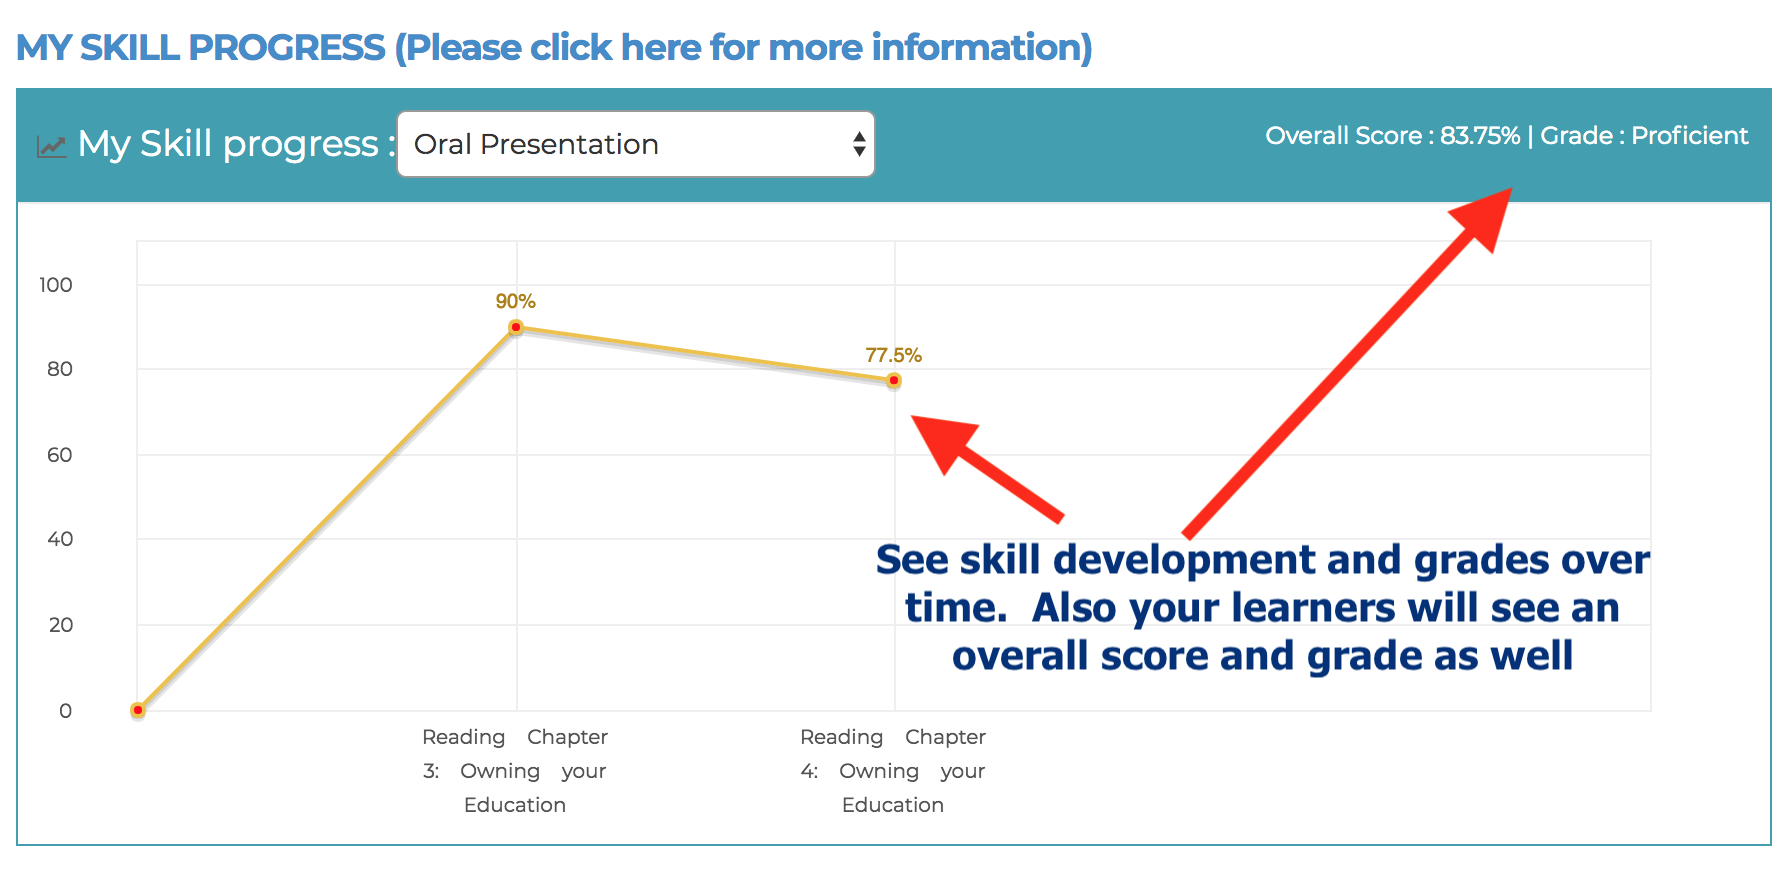 See skill development and grades over time.  Also your learners will see an overall score and grade as well